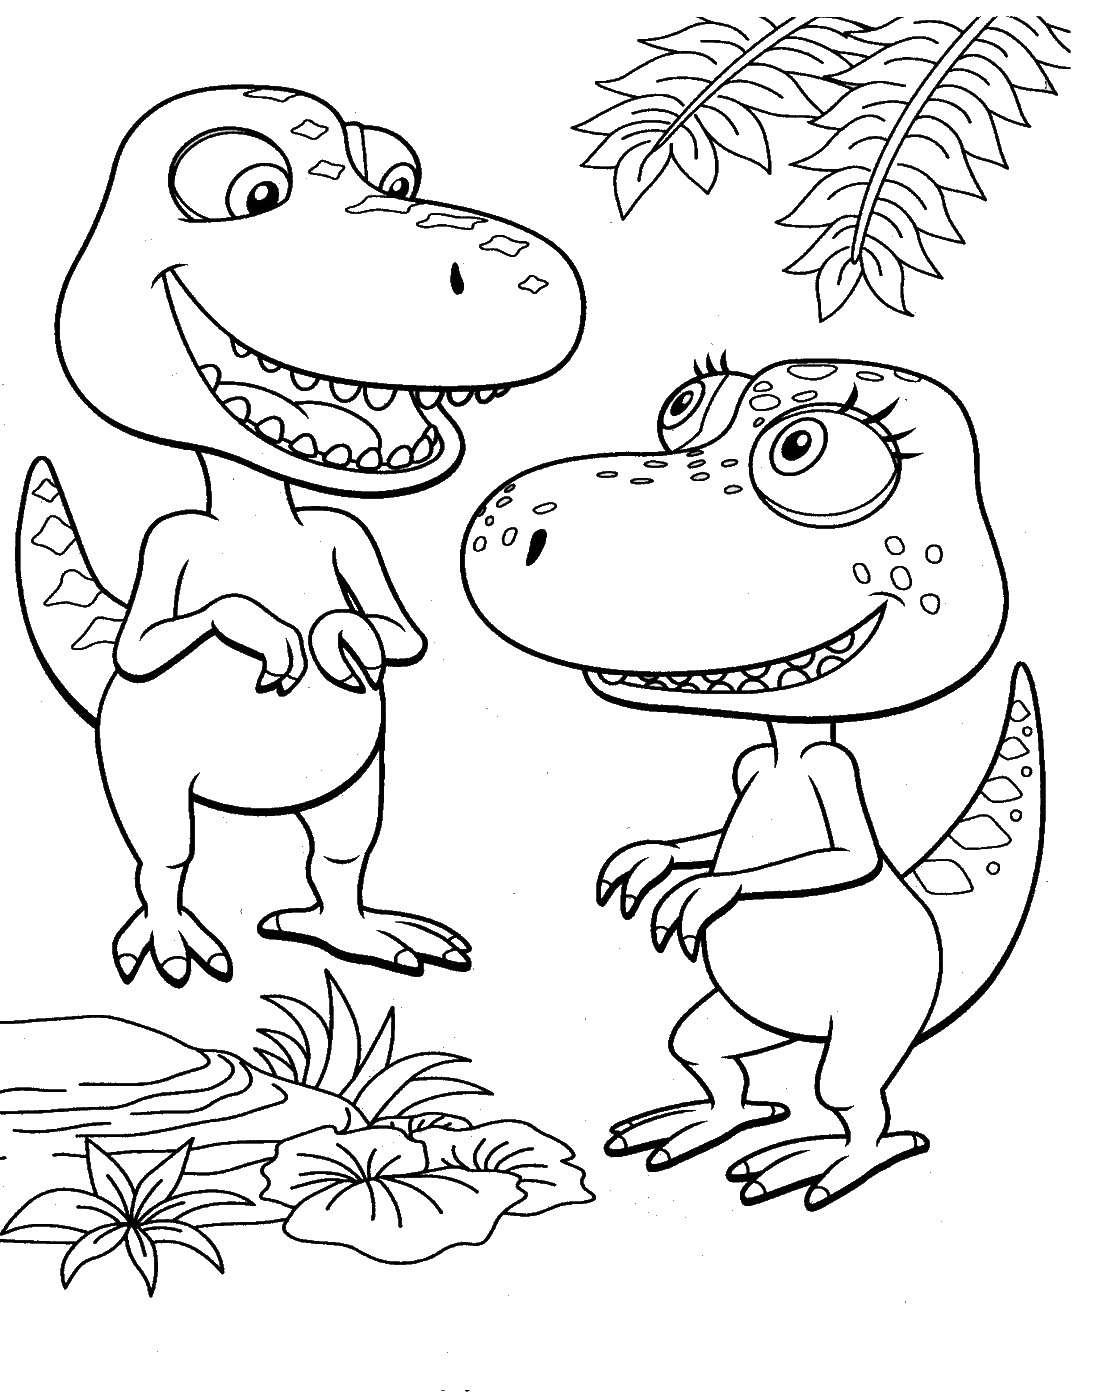 Dinosaur train coloring pages dinosaurs pictures and facts for Train coloring book pages